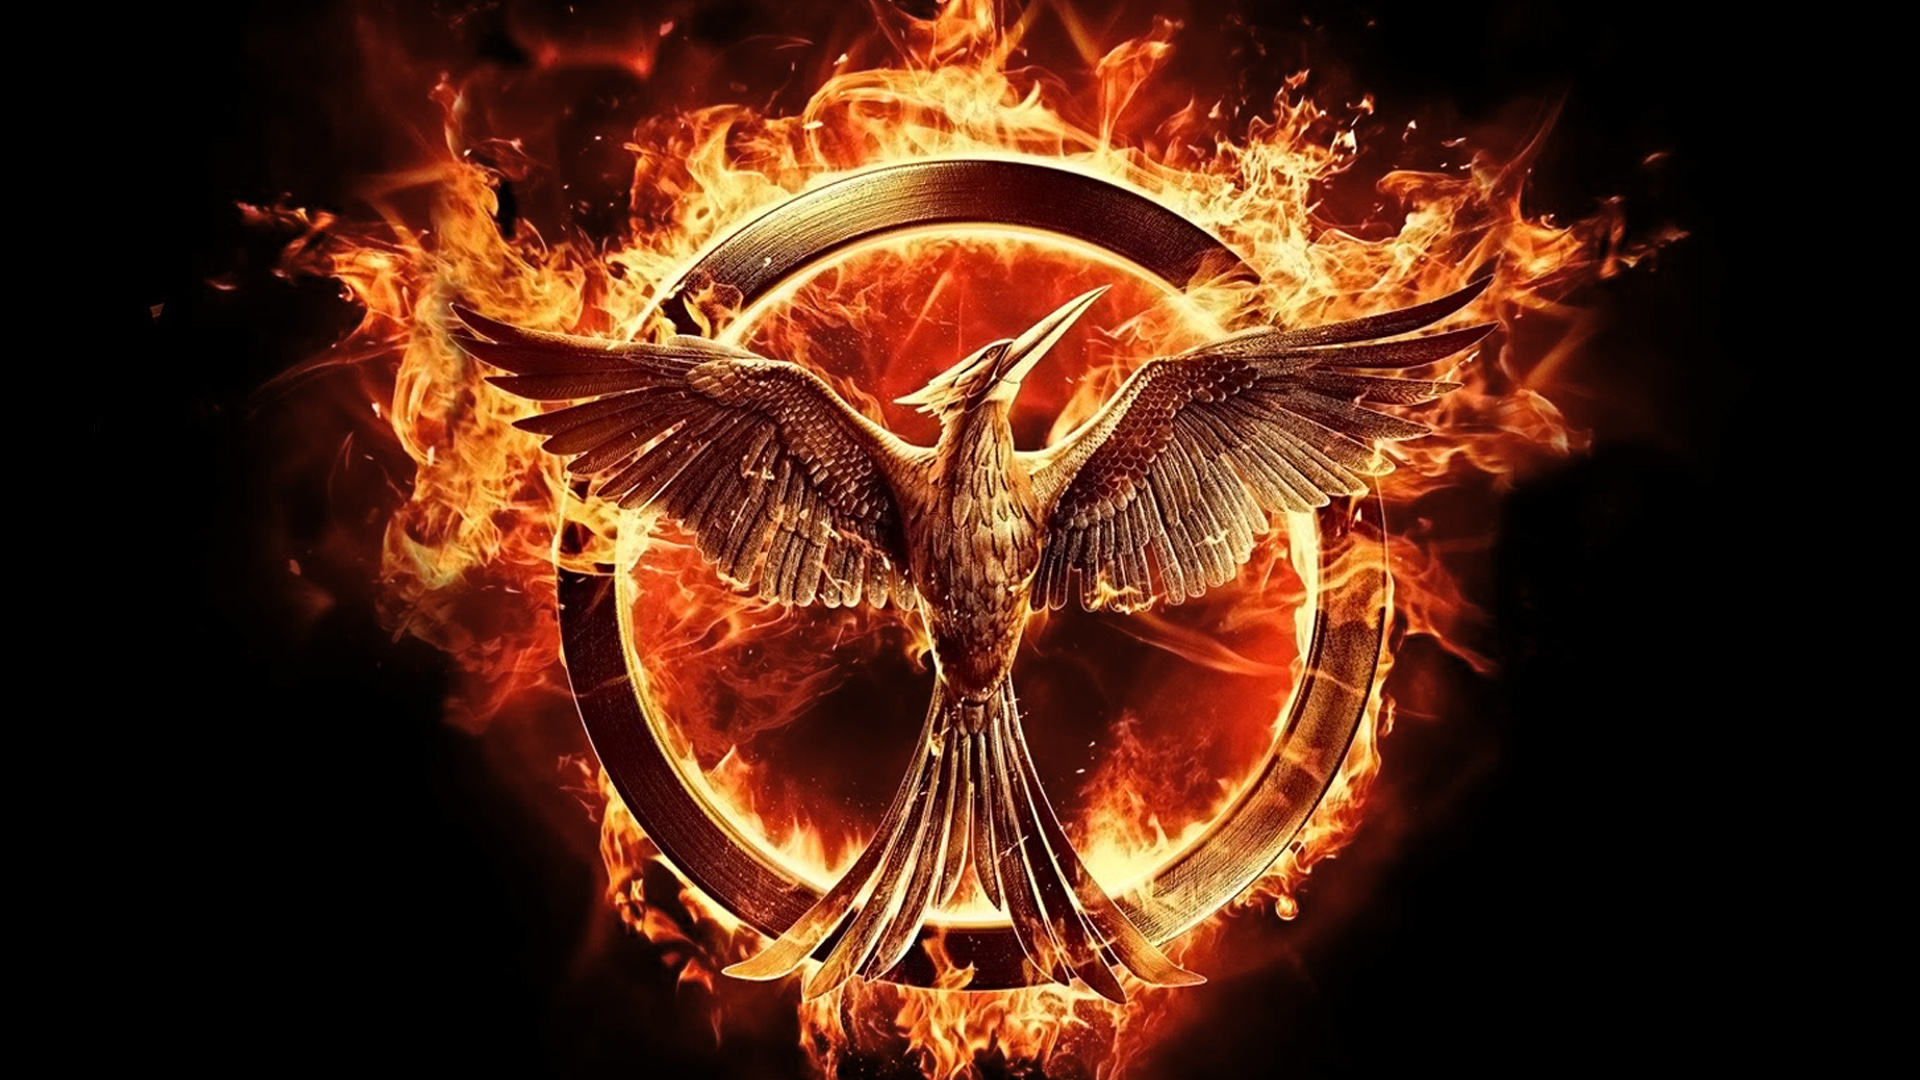 The hunger games mockingjay free desktop wallpapers for the hunger games mockingjay wallpapers voltagebd Image collections